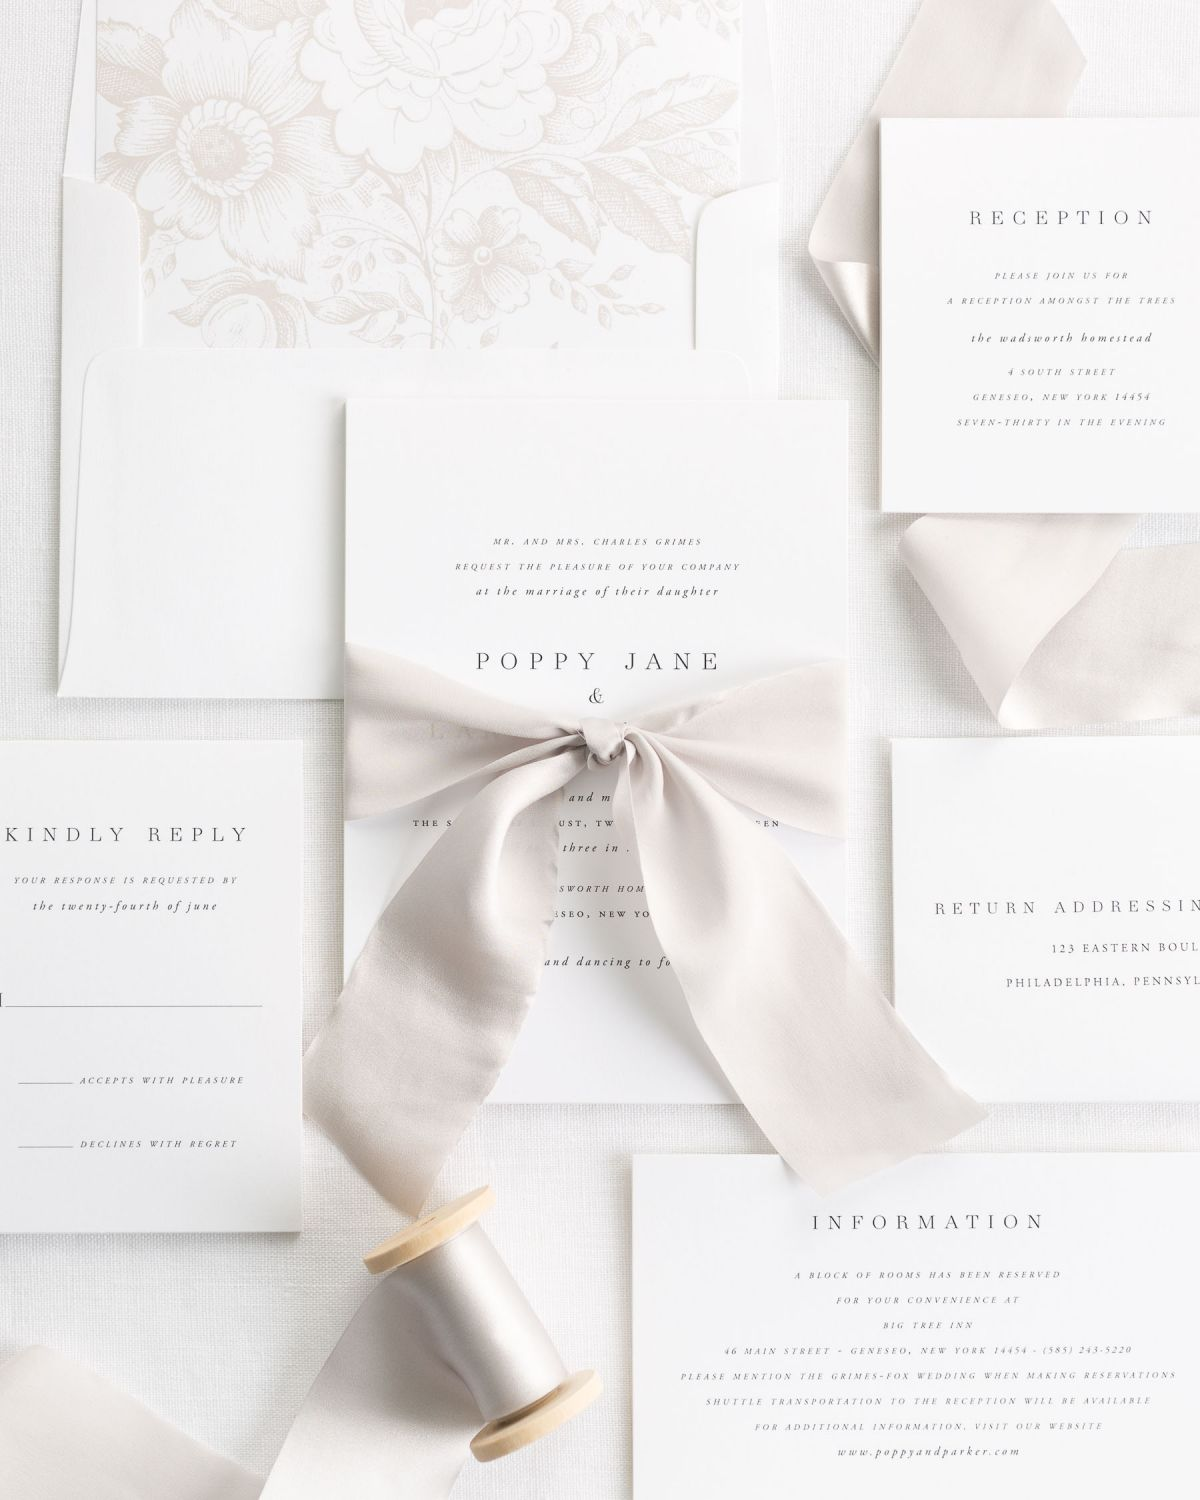 Silk Ribbon Wedding Invitations in mocha with a simple and classic design